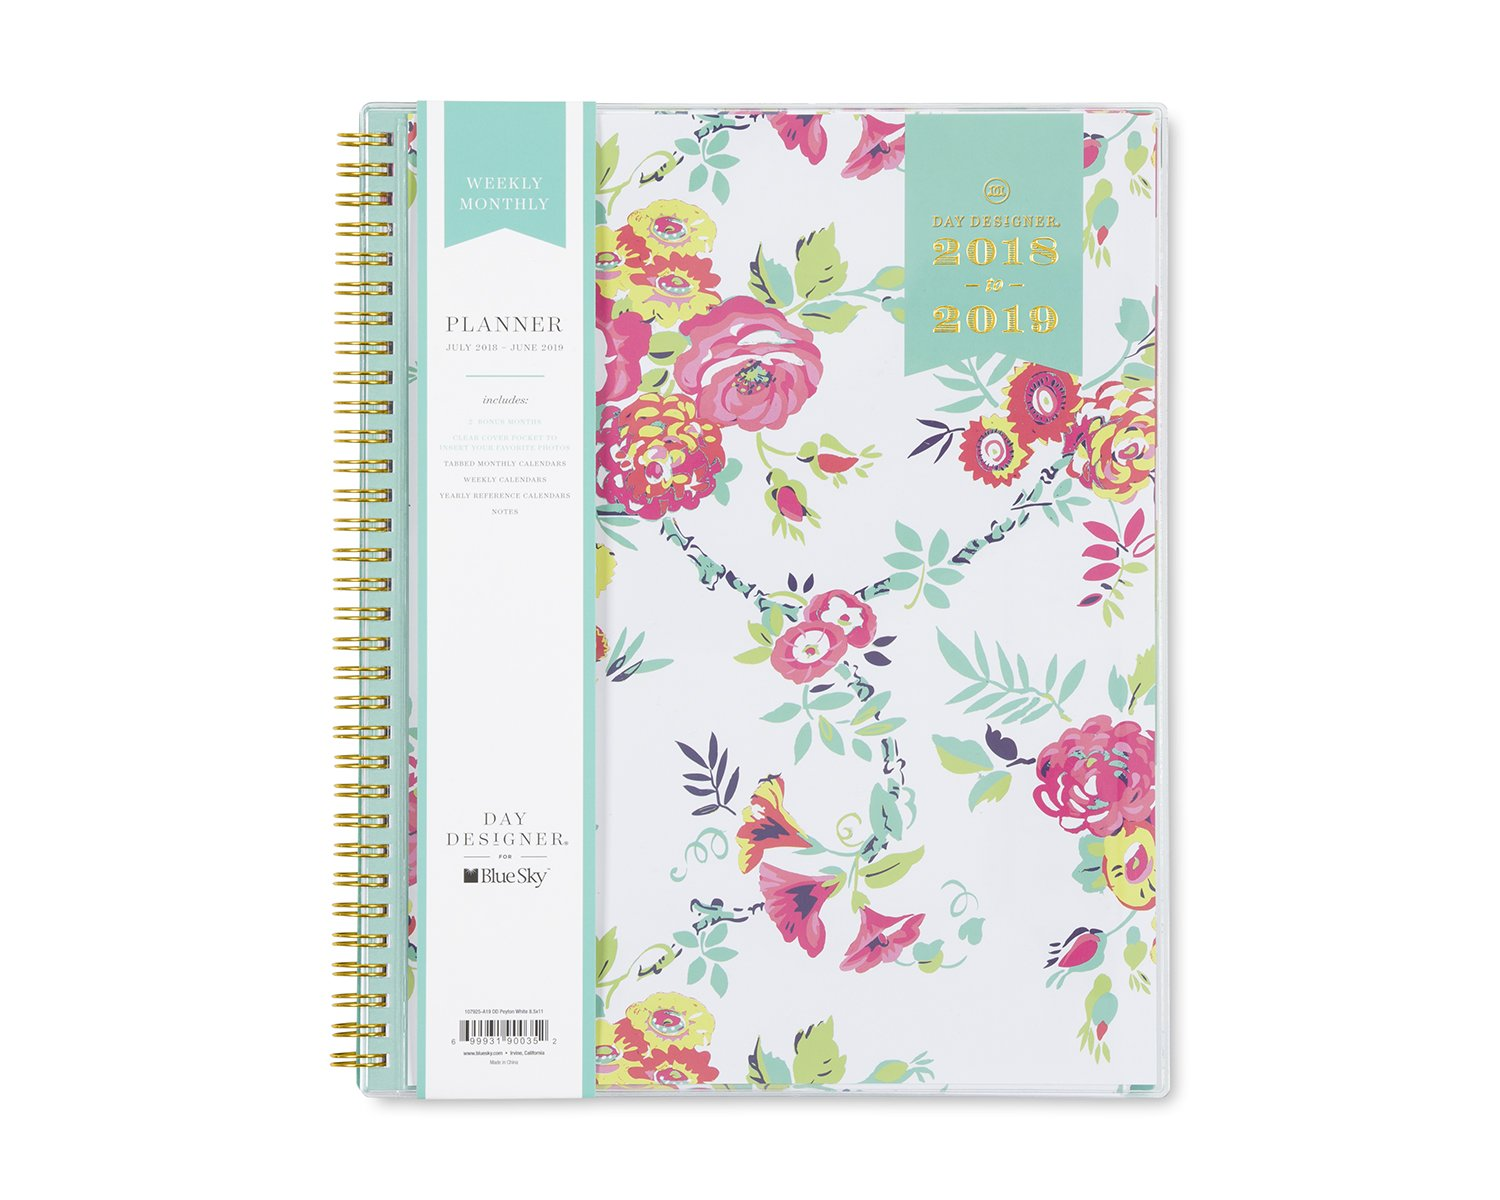 Day Designer for Blue Sky 2018-2019 Academic Year Weekly & Monthly Planner, Flexible Cover, Twin-Wire Binding, 8.5'' x 11'', Peyton White Design